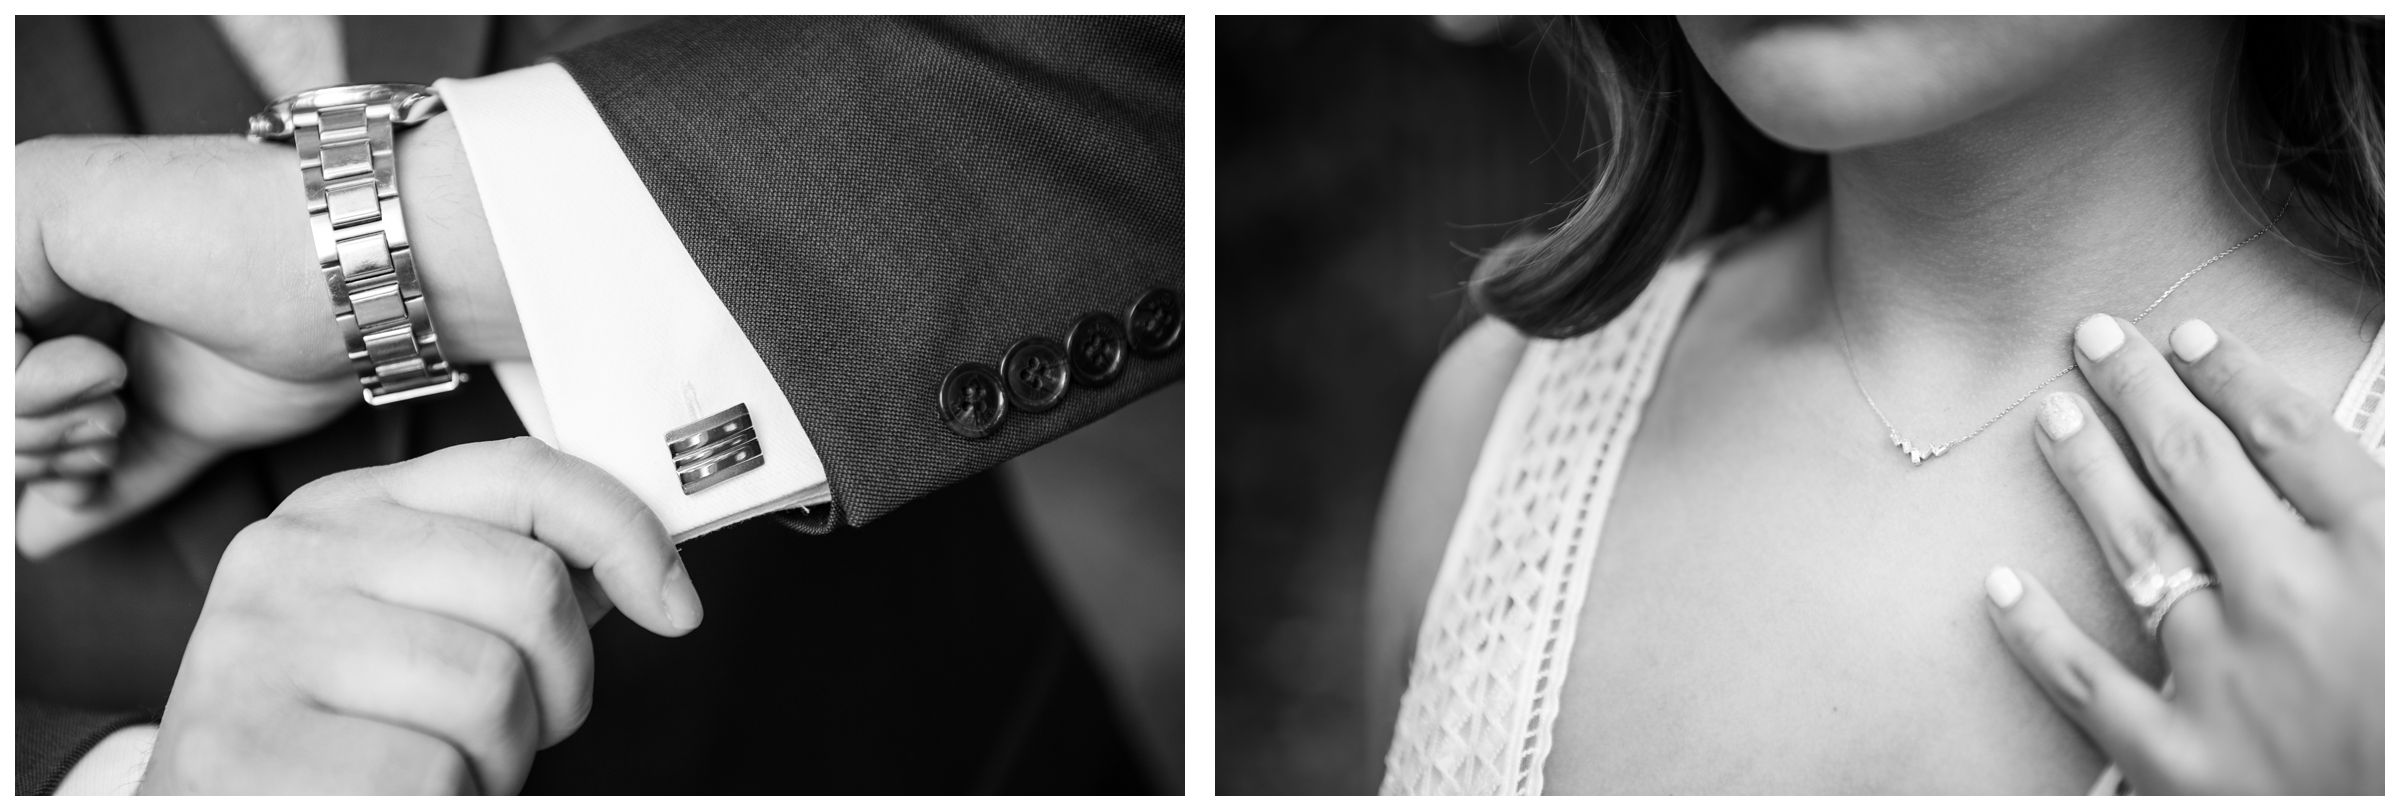 detail of bride's necklace and groom's cufflinks